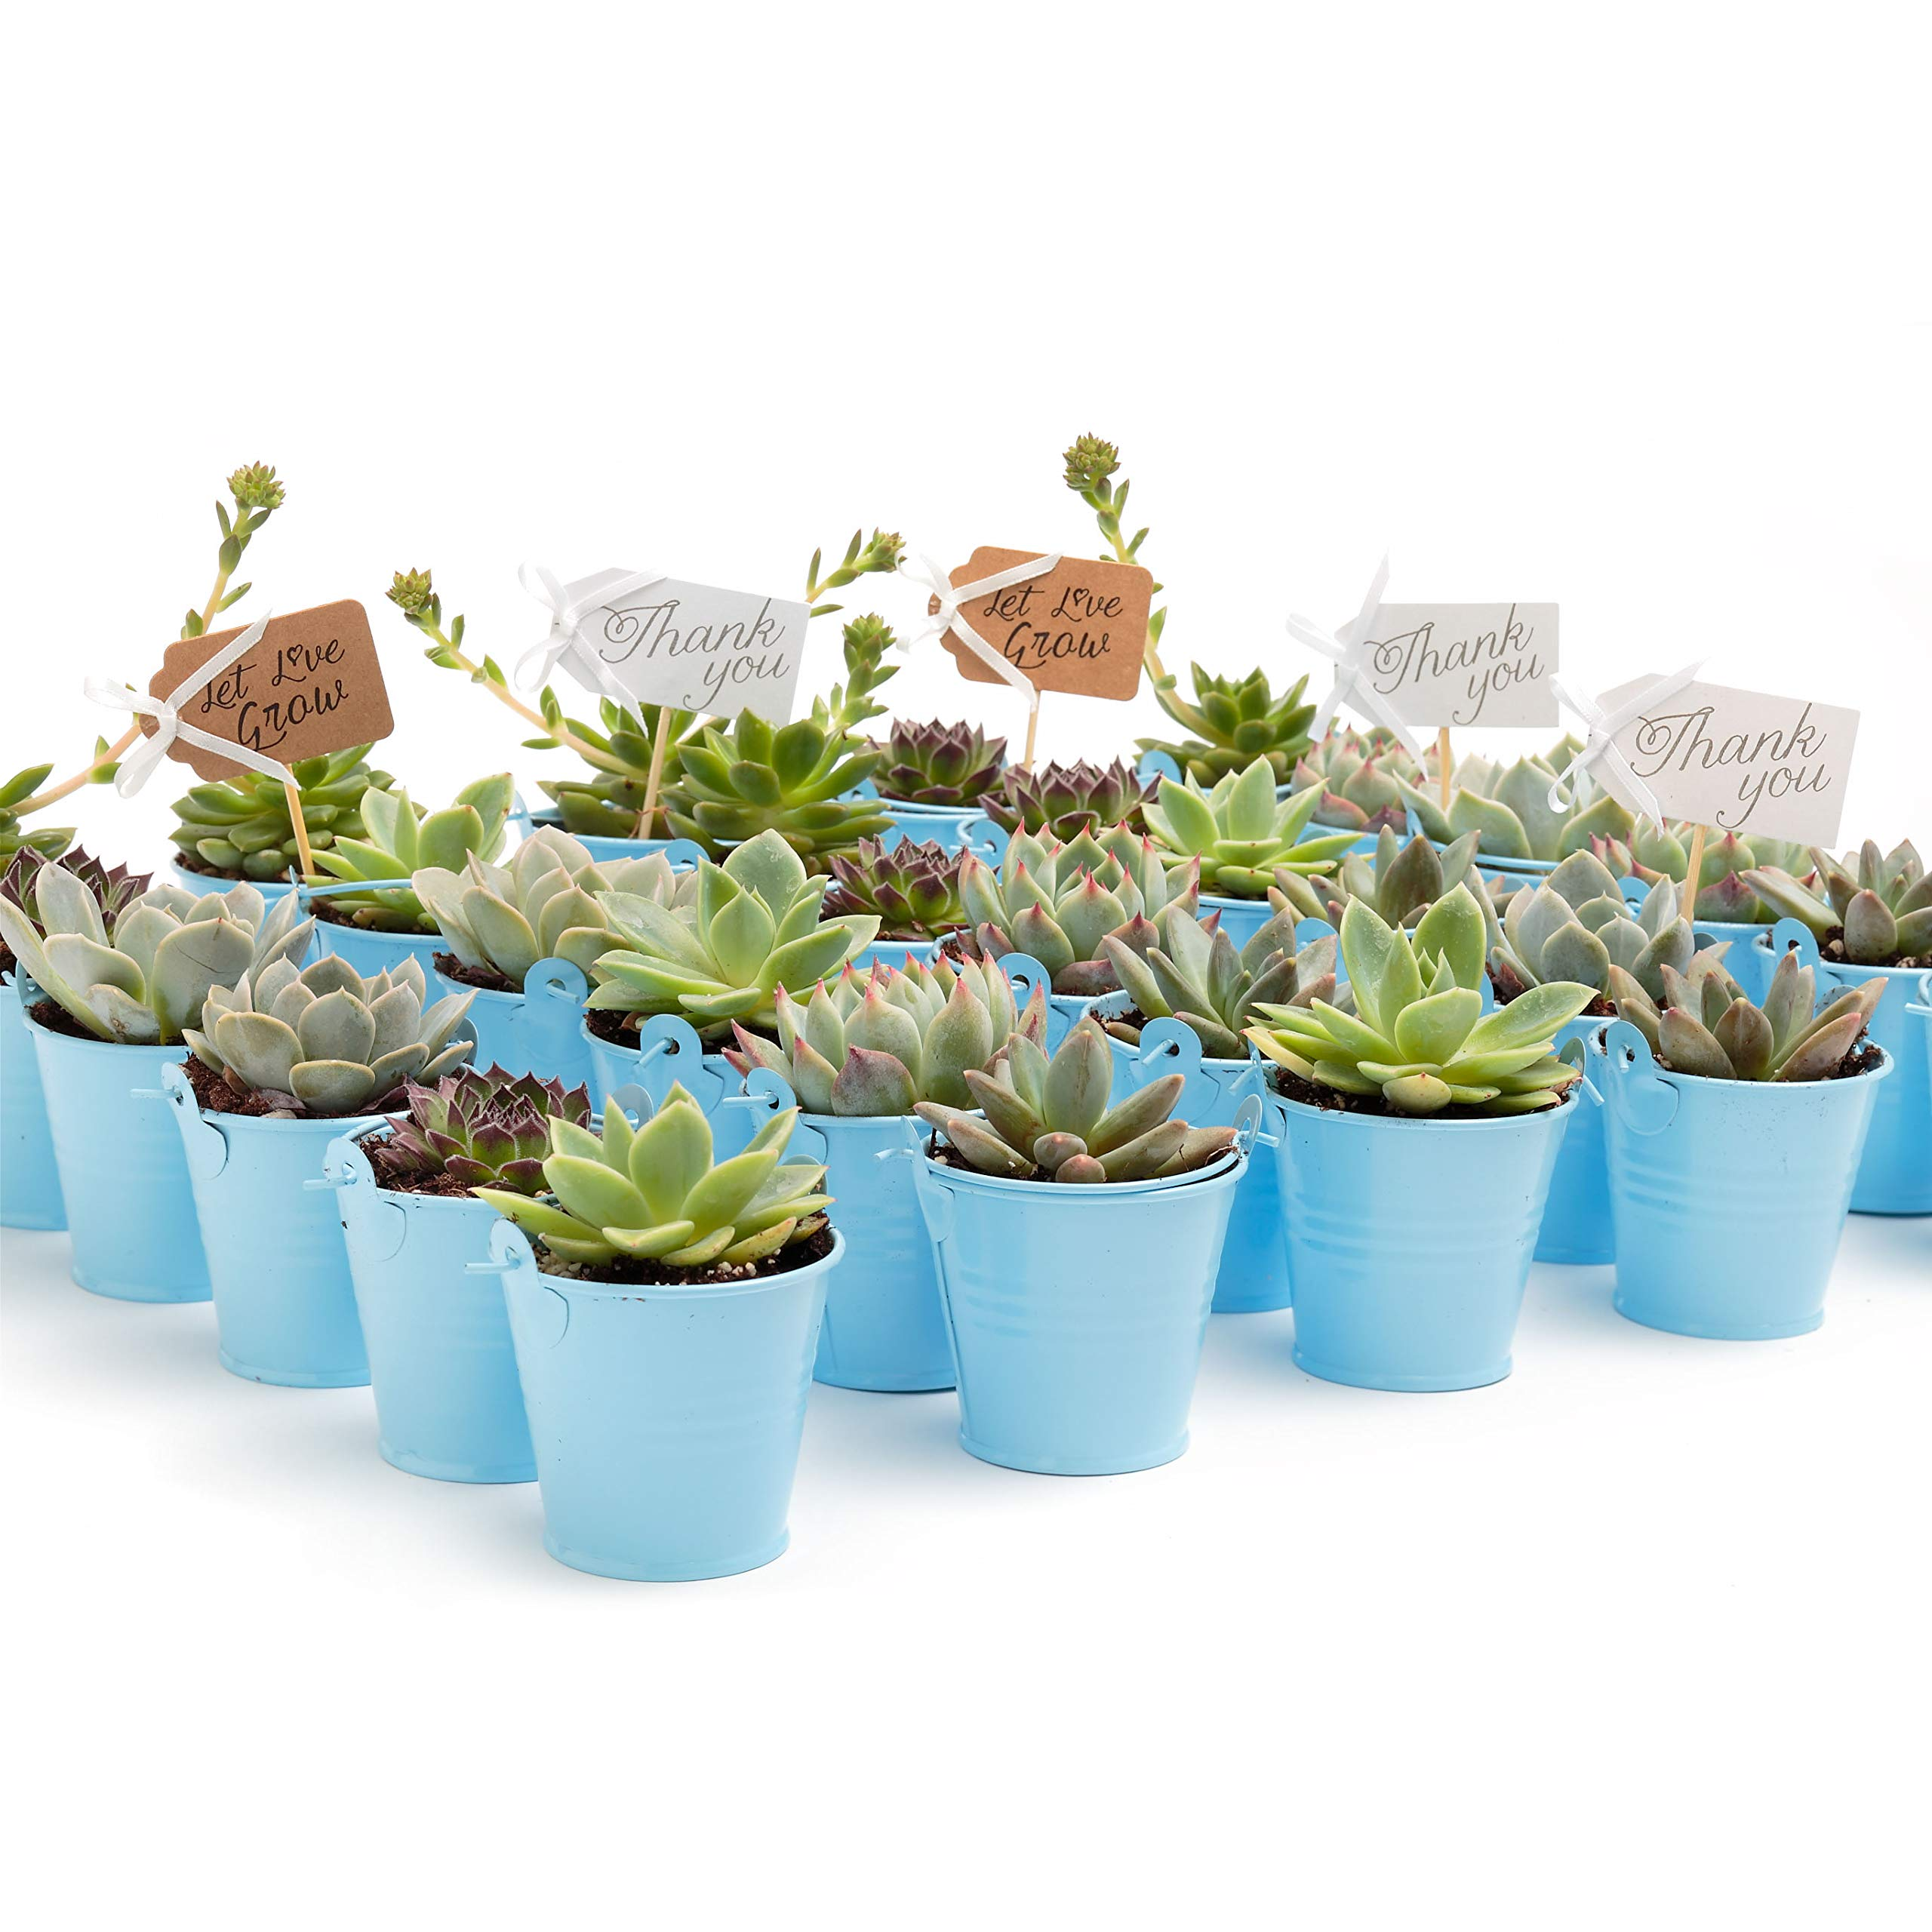 2 in. Wedding Event Rosette Succulents with Blue Metal Pails and Thank You Tags (30) by Succulent Source (Image #1)